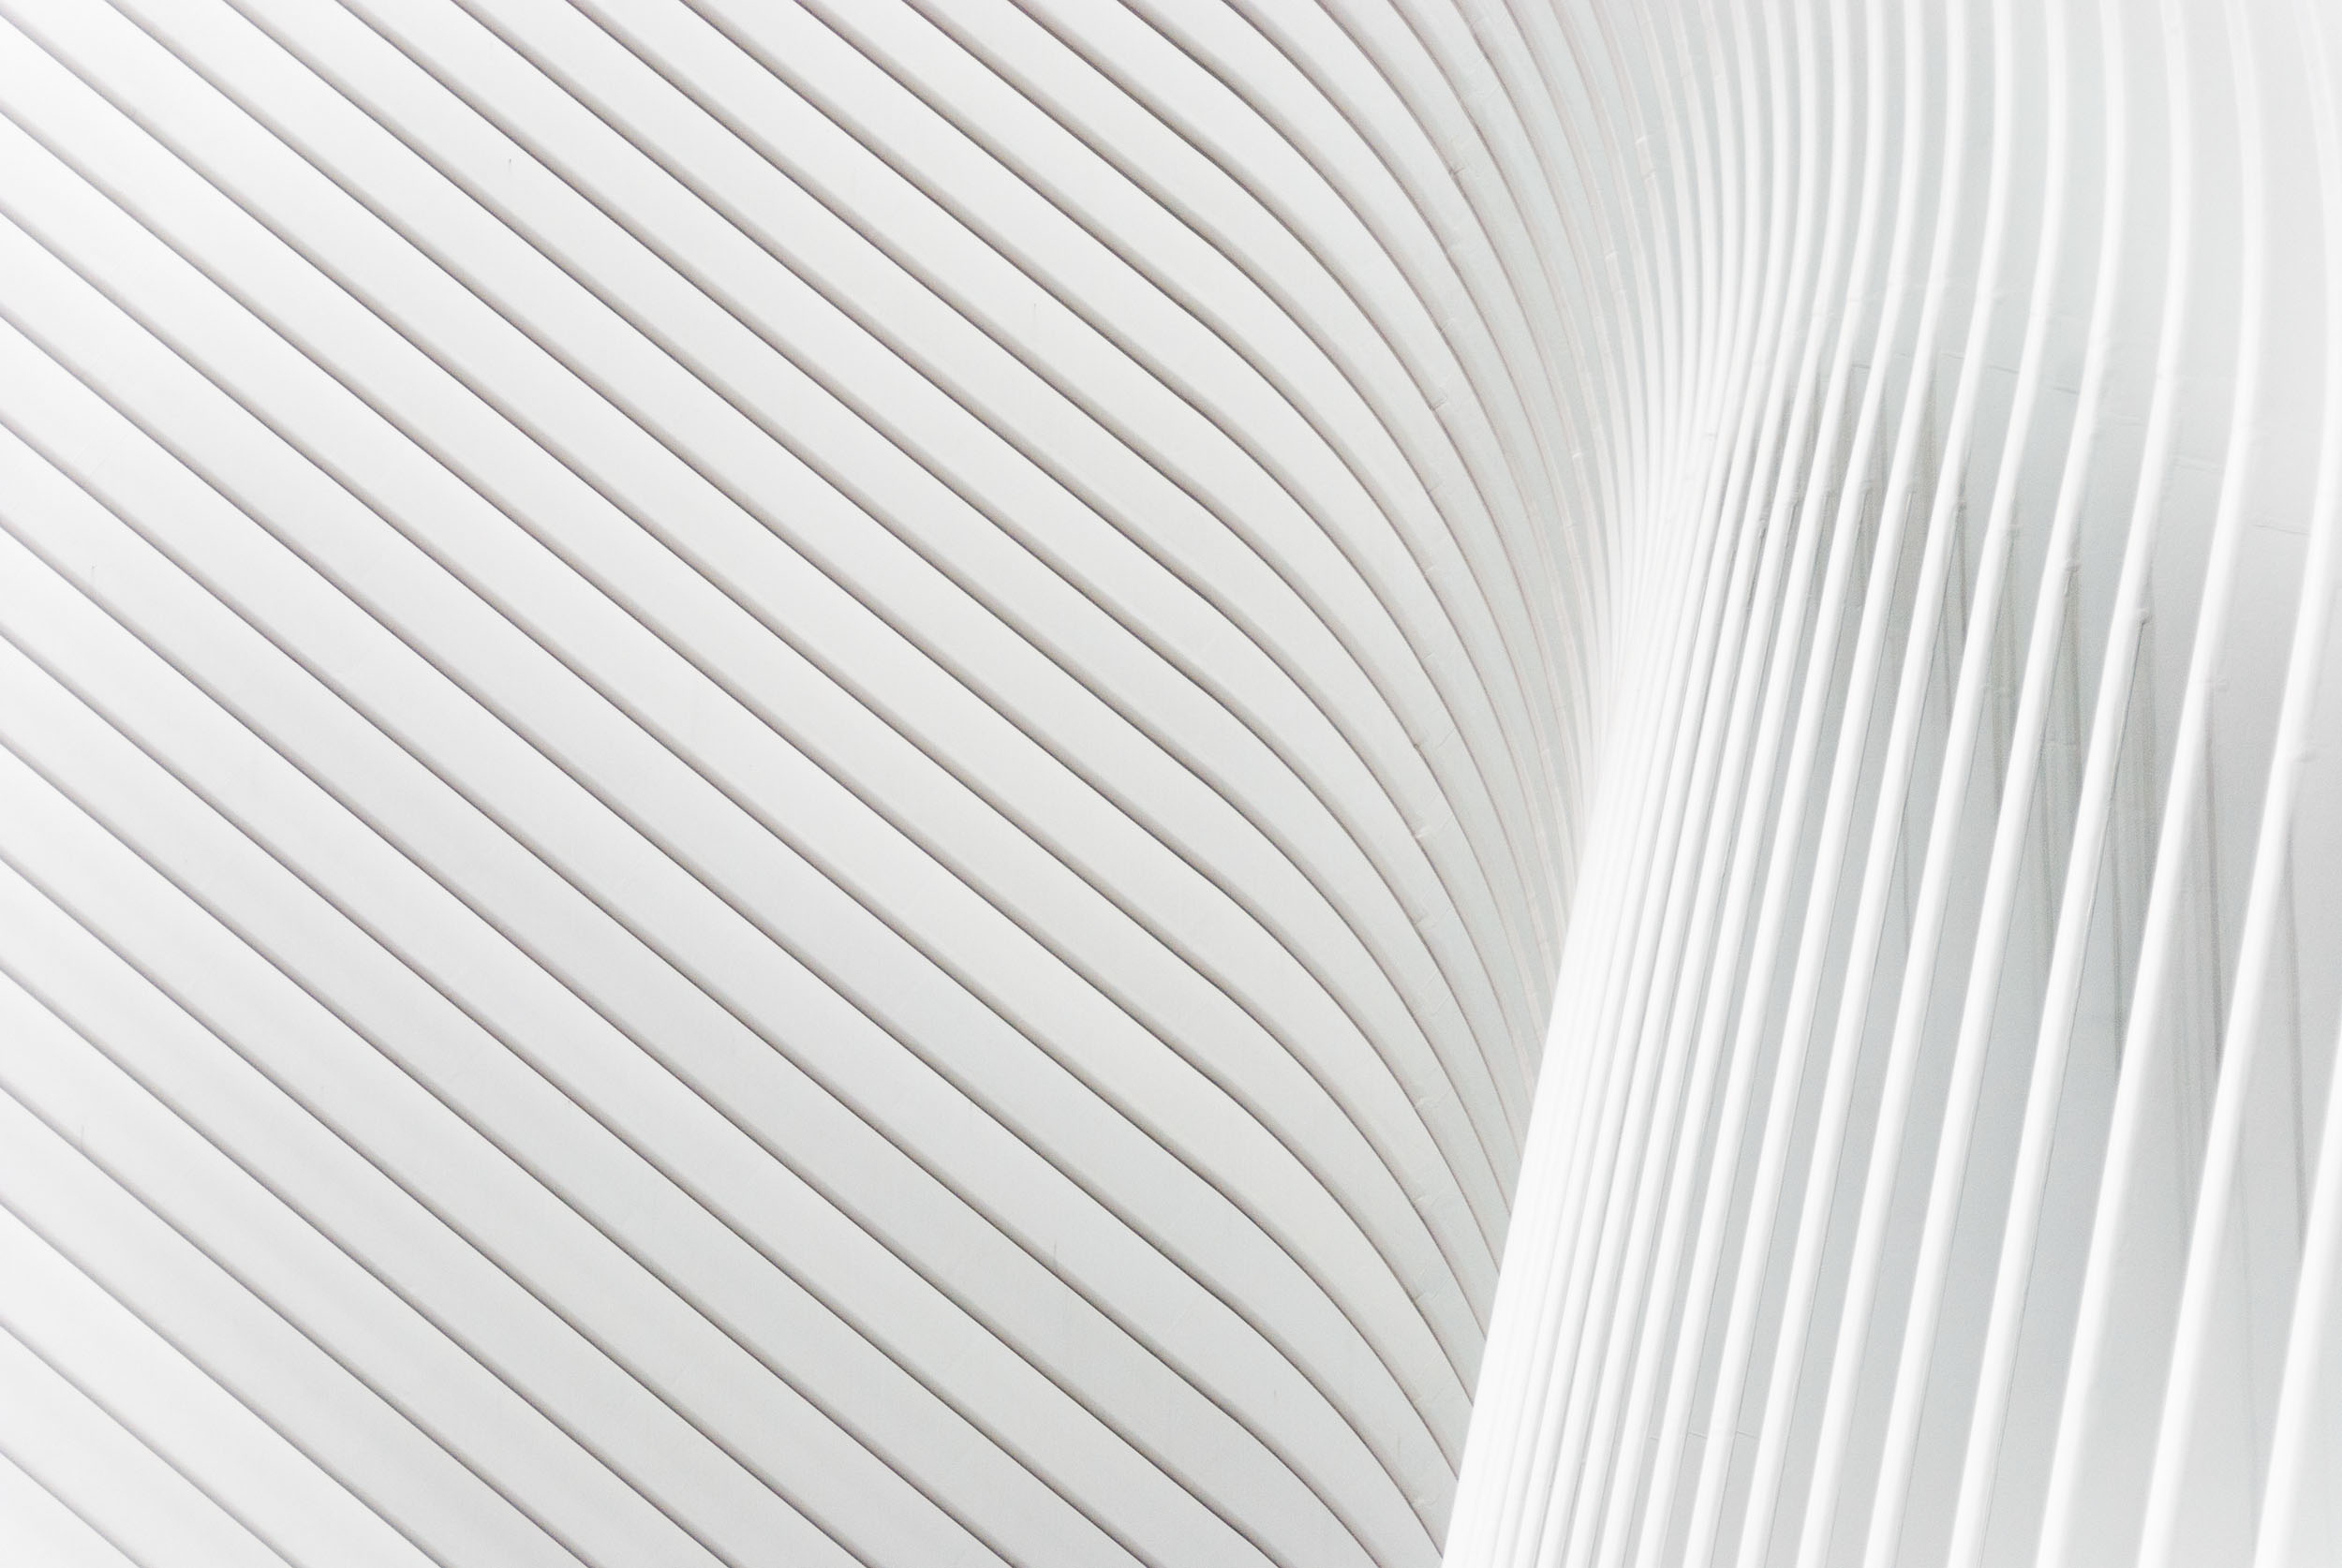 """The """"Oculus"""", designed by Santiago Calatrava, forms part of the World Trade Center site in New York."""